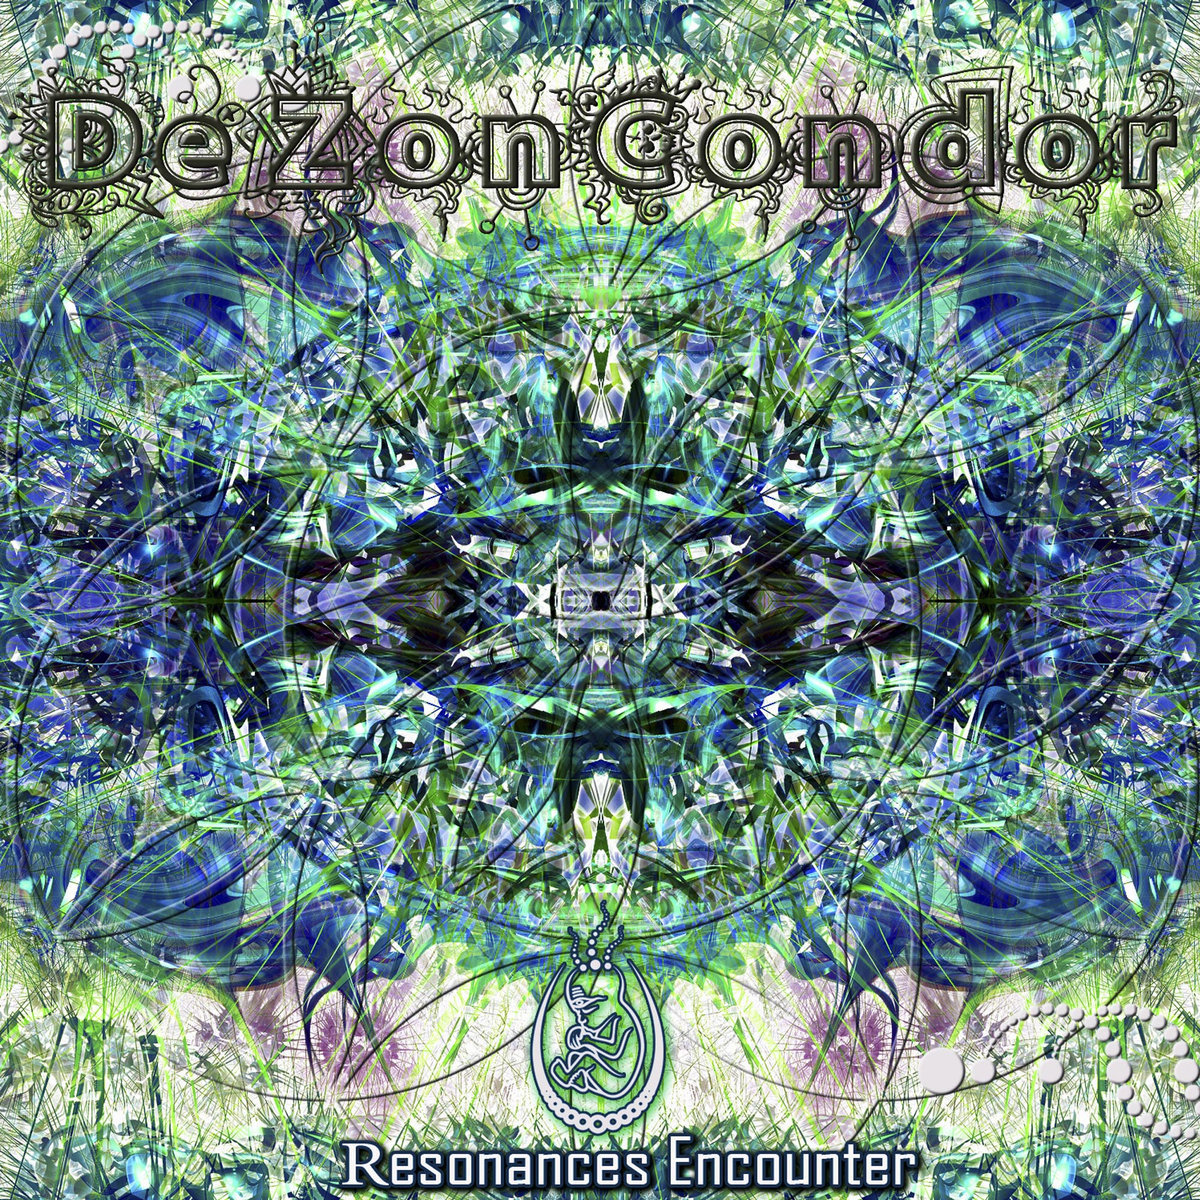 DezonCondor - Resonances Encounter @ 'Resonances Encounter' album (ambient, electronic)